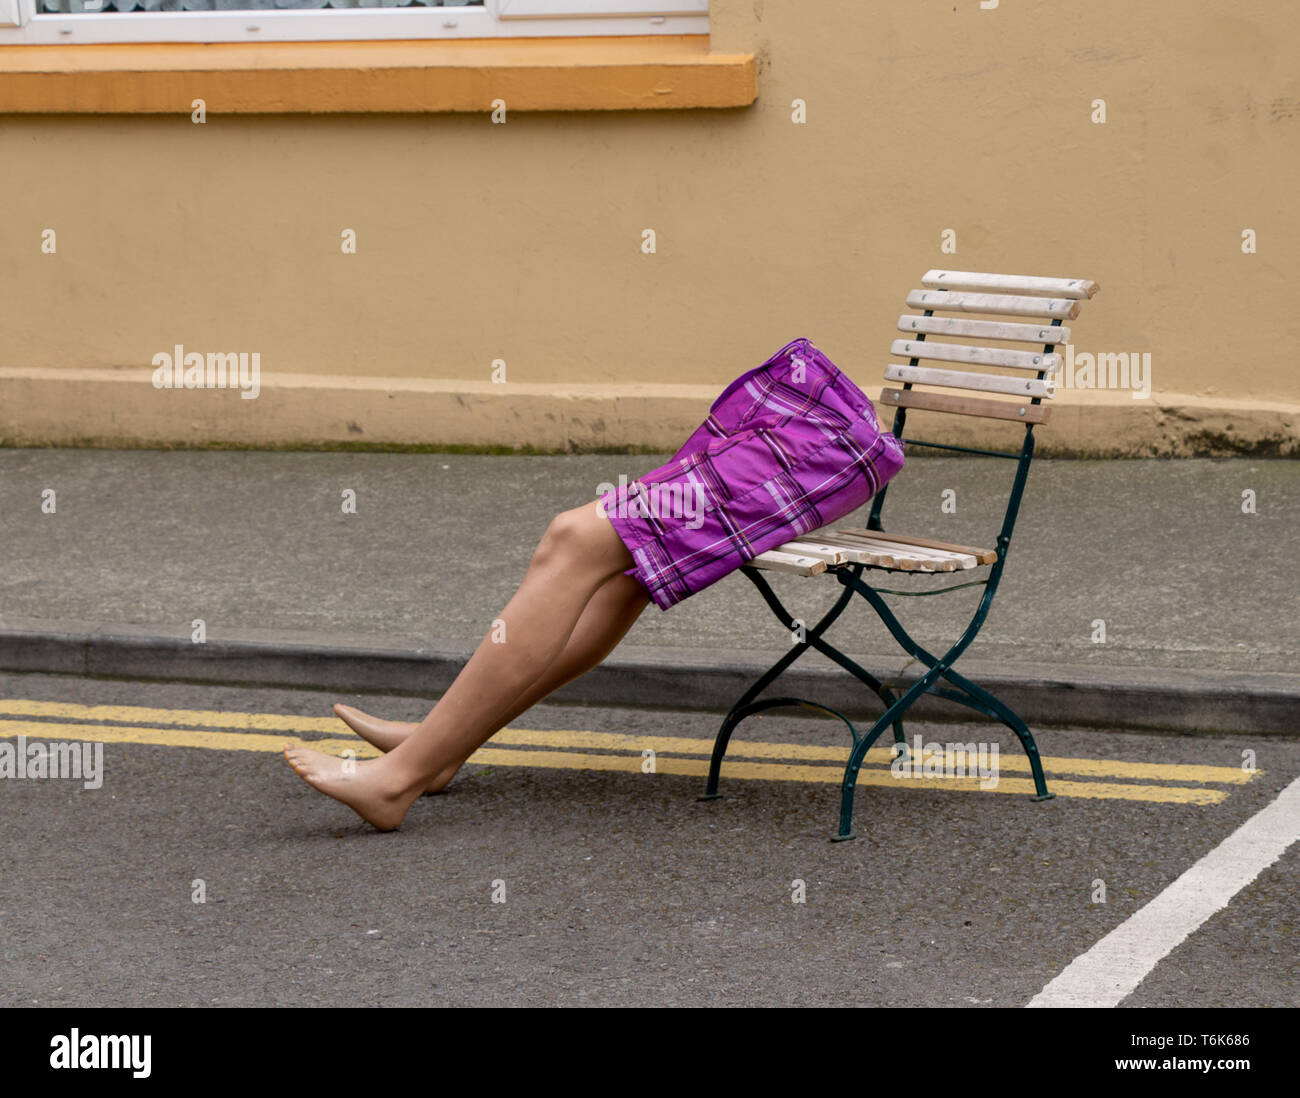 bottom-half-of-a-tailors-dummy-wearing-purple-shorts-sat-on-a-chair-in-the-road-T6K686.jpg